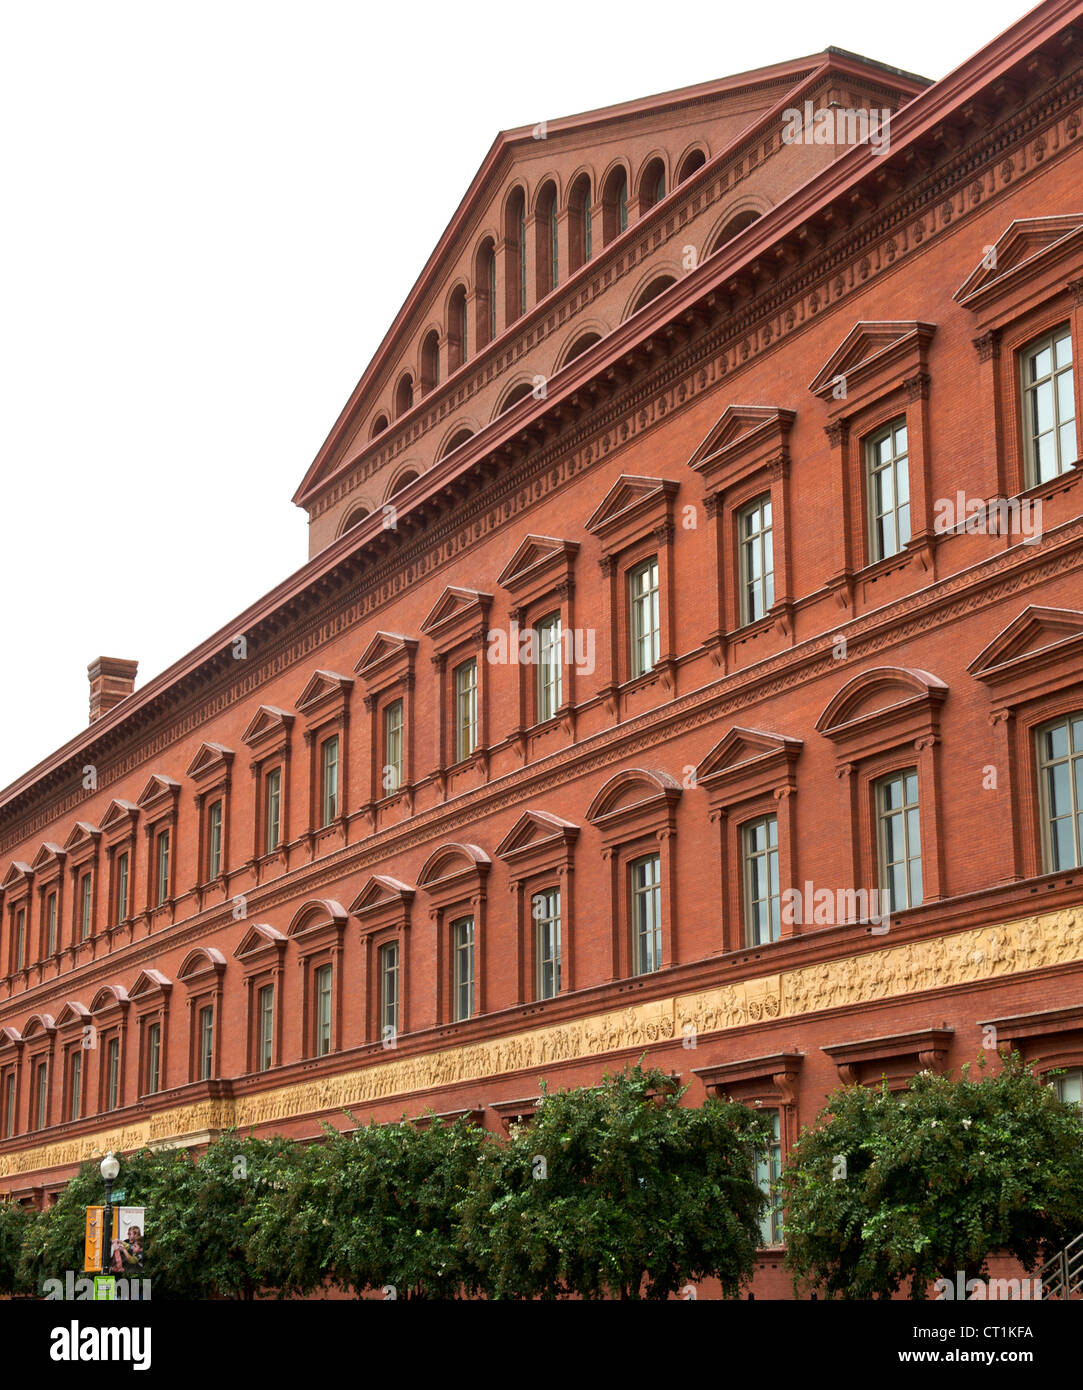 Pension Building in Washington DC, USA. - Stock Image